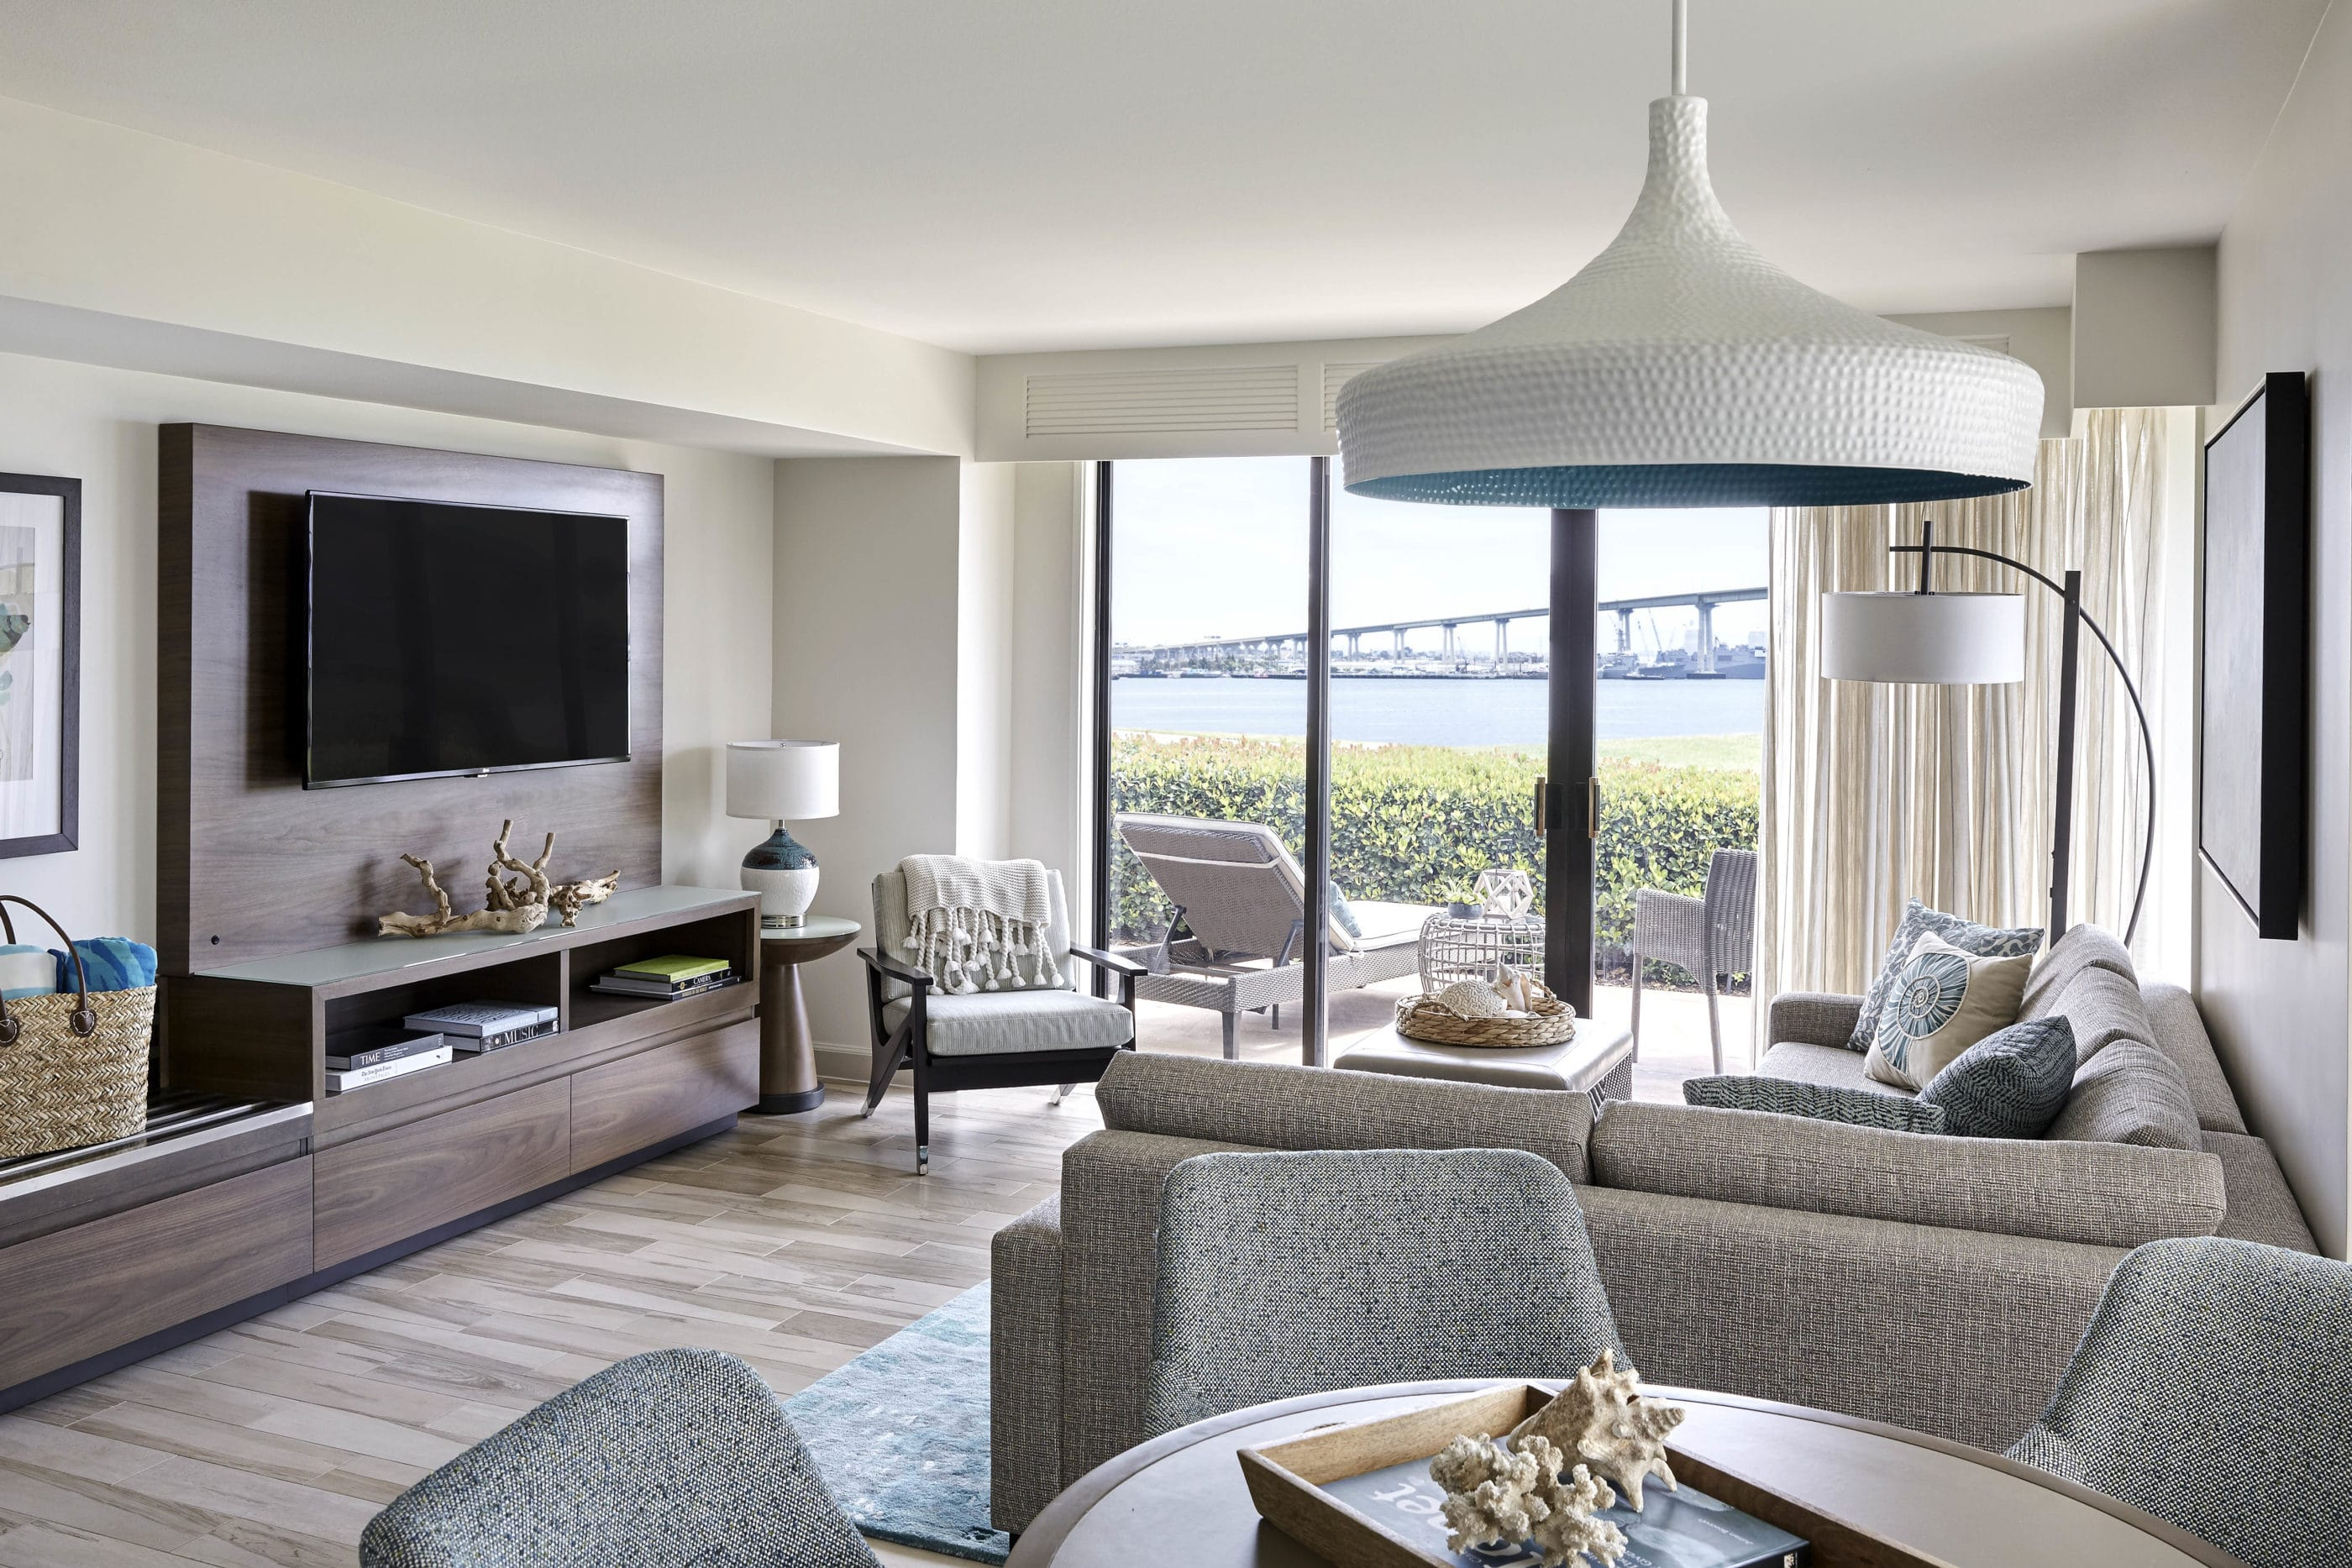 Living room of a Coronado Island Marriott one-bedroom cottage decorated in grey and neutral tones.